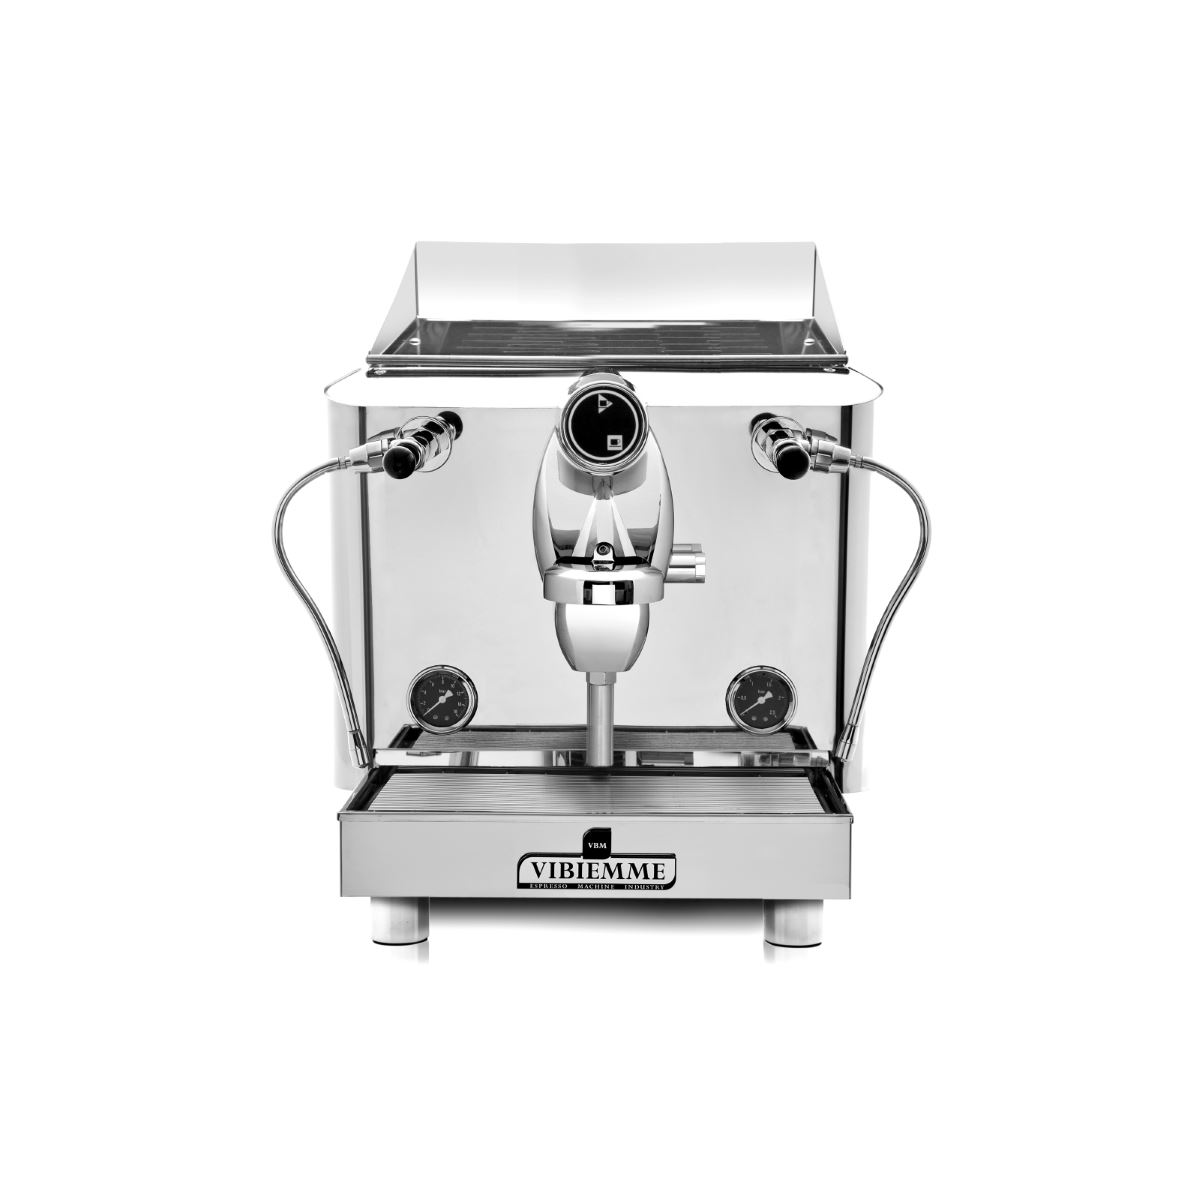 Professional coffee machine Vibiemme Lollo Semiautomatica, 1 group